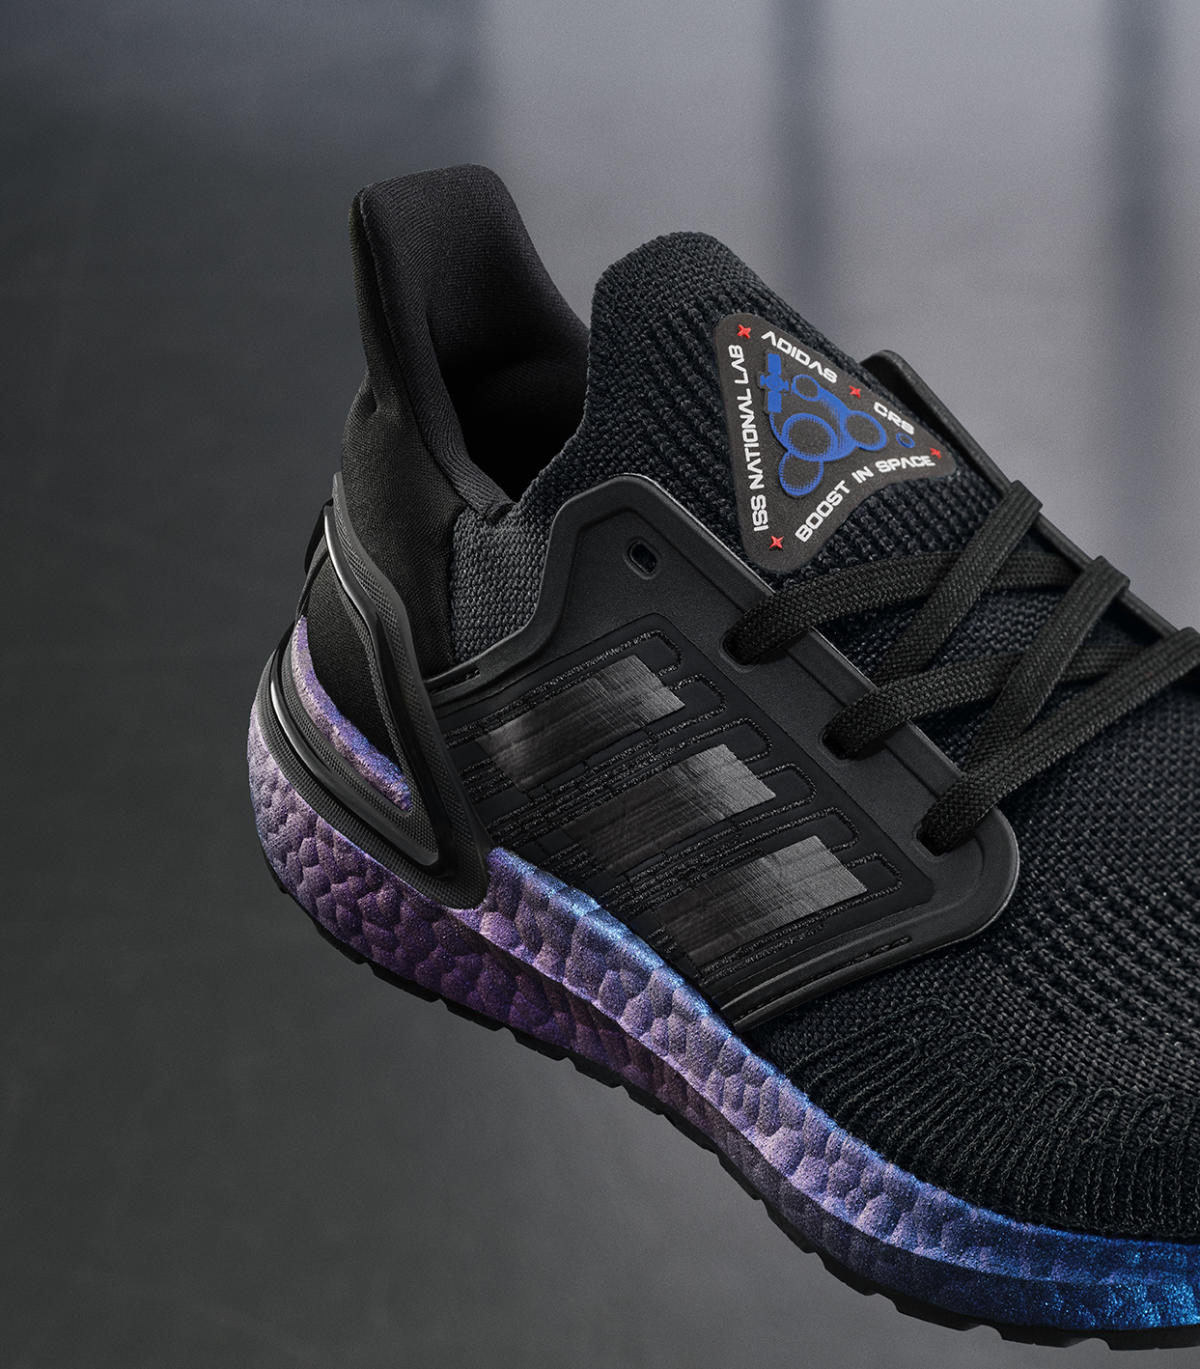 SPACERACE_ULTRABOOST20_SS20_CLOSE_UP_CAGE_EG1341-LR